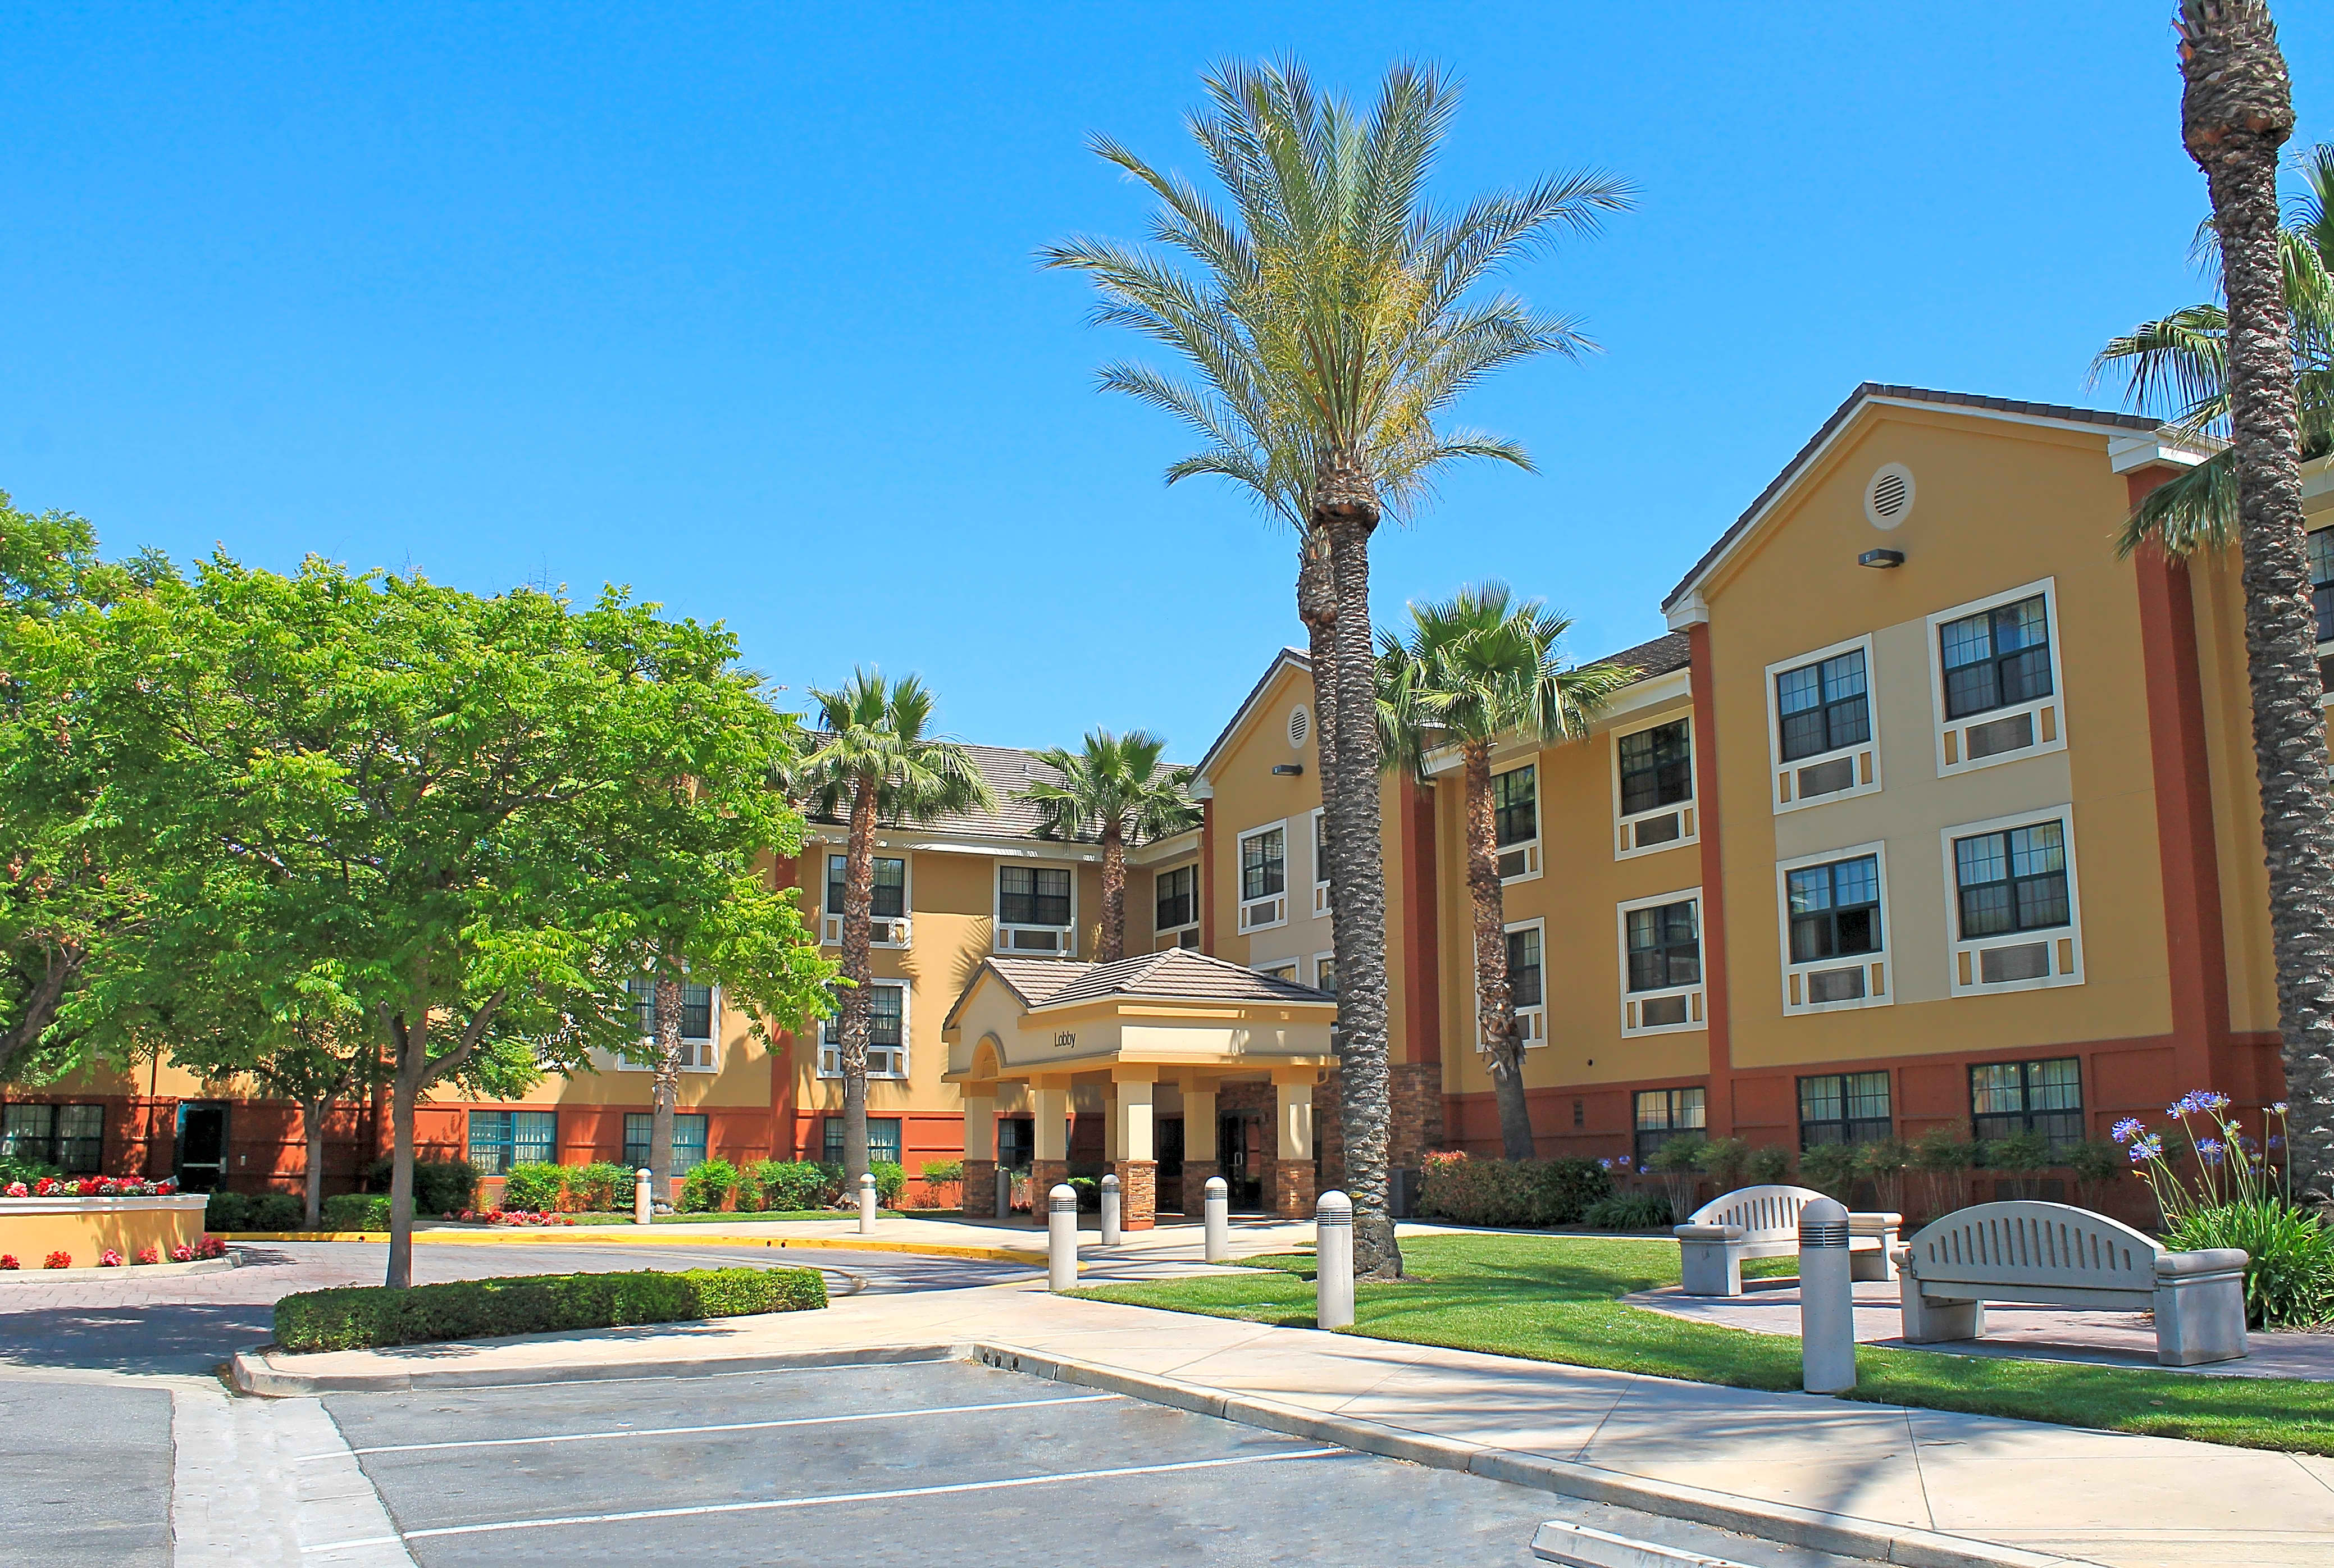 Apartments Near Cal Poly Pomona Furnished Studio - Los Angeles - Ontario Airport for Cal Poly Pomona Students in Pomona, CA